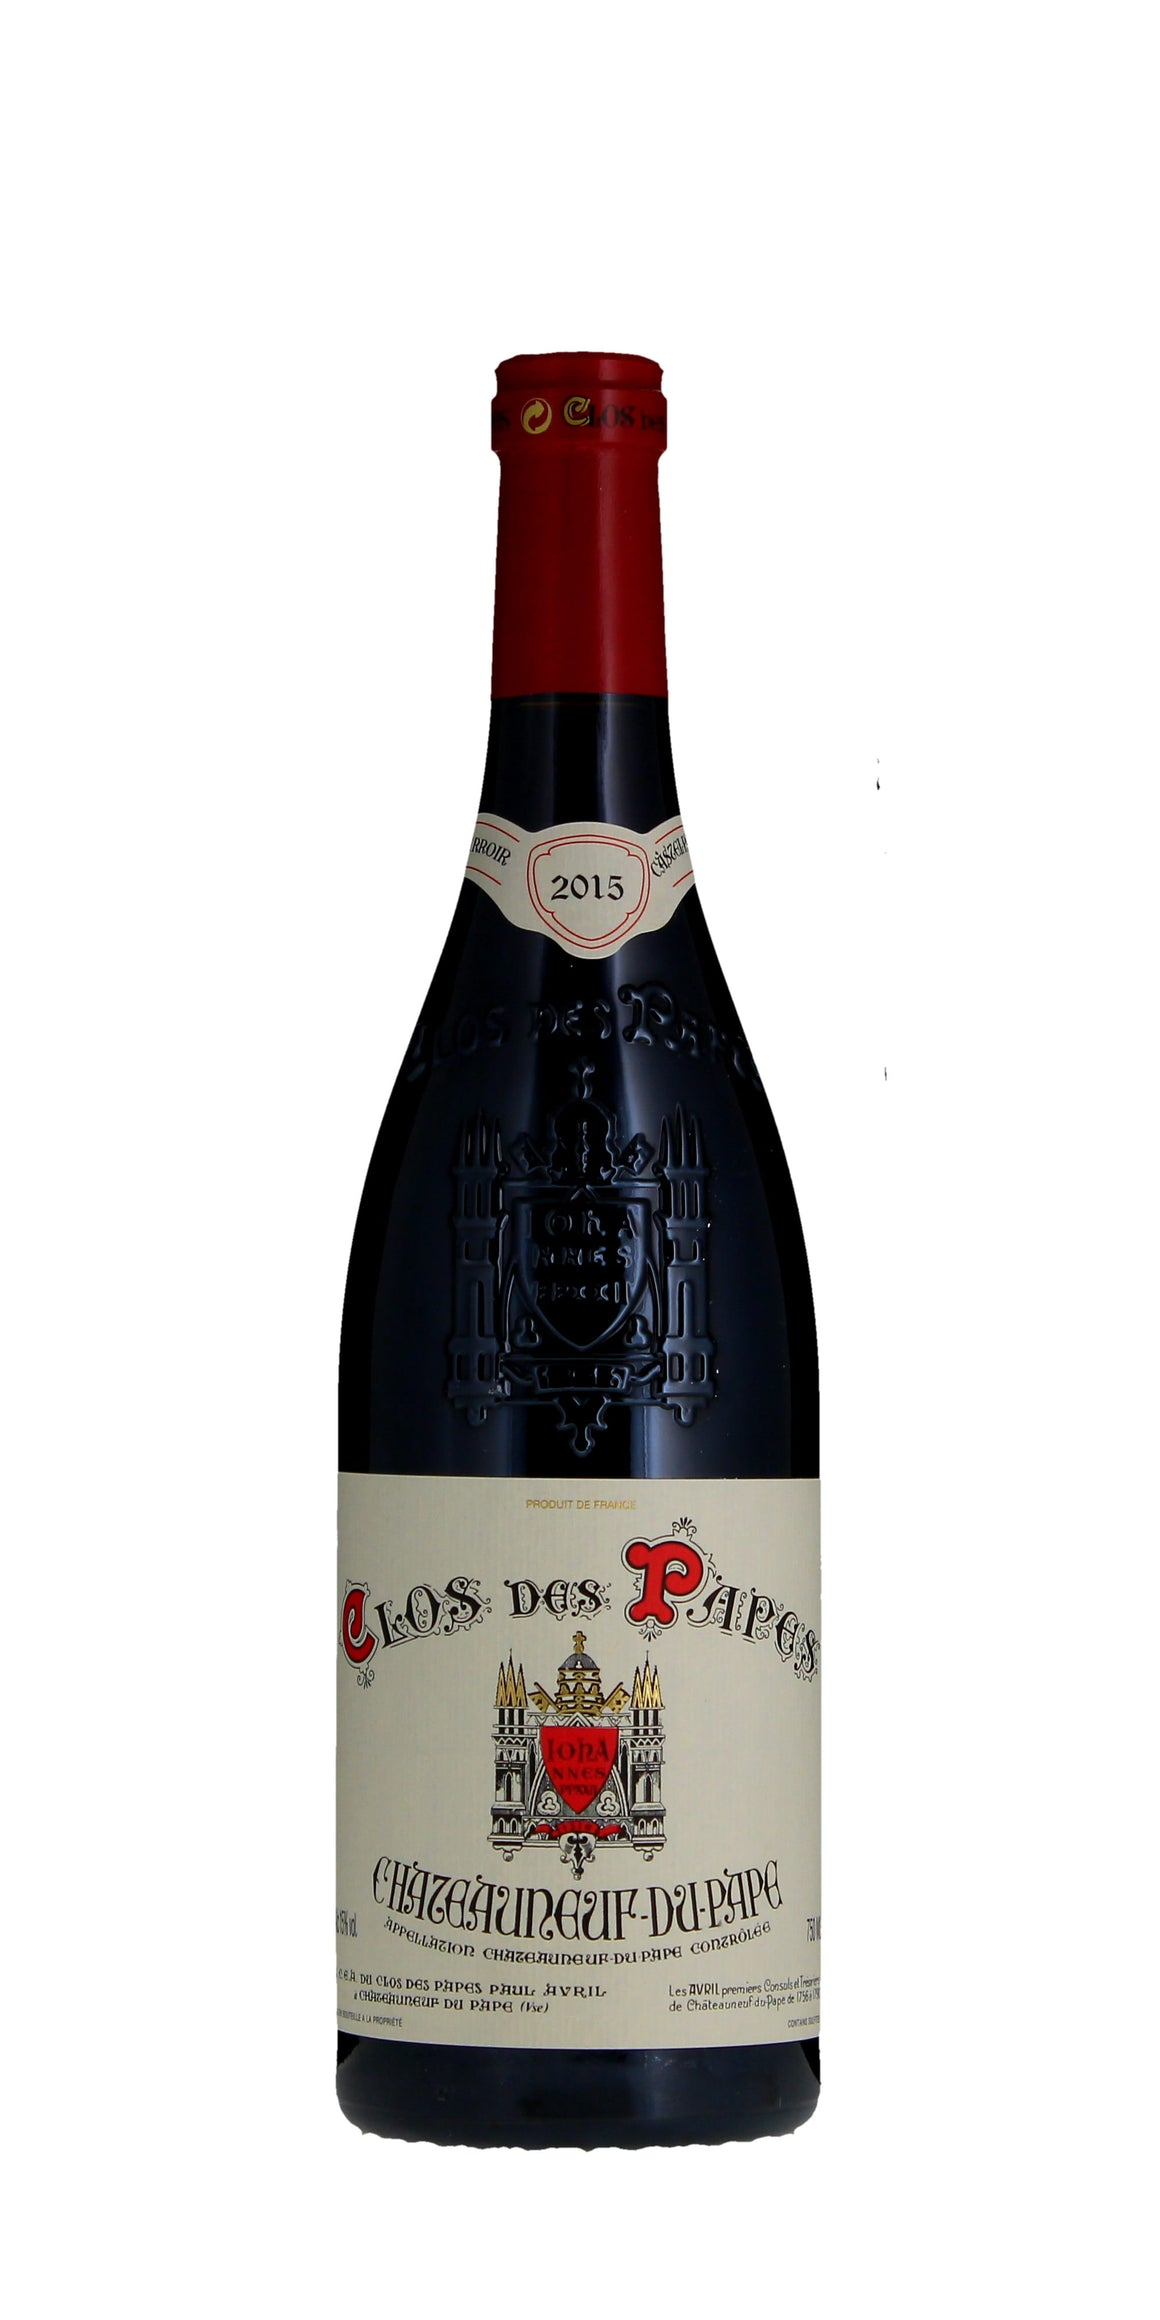 Paul Avril, Chateauneuf du Pape, Clos de Papes, 2015